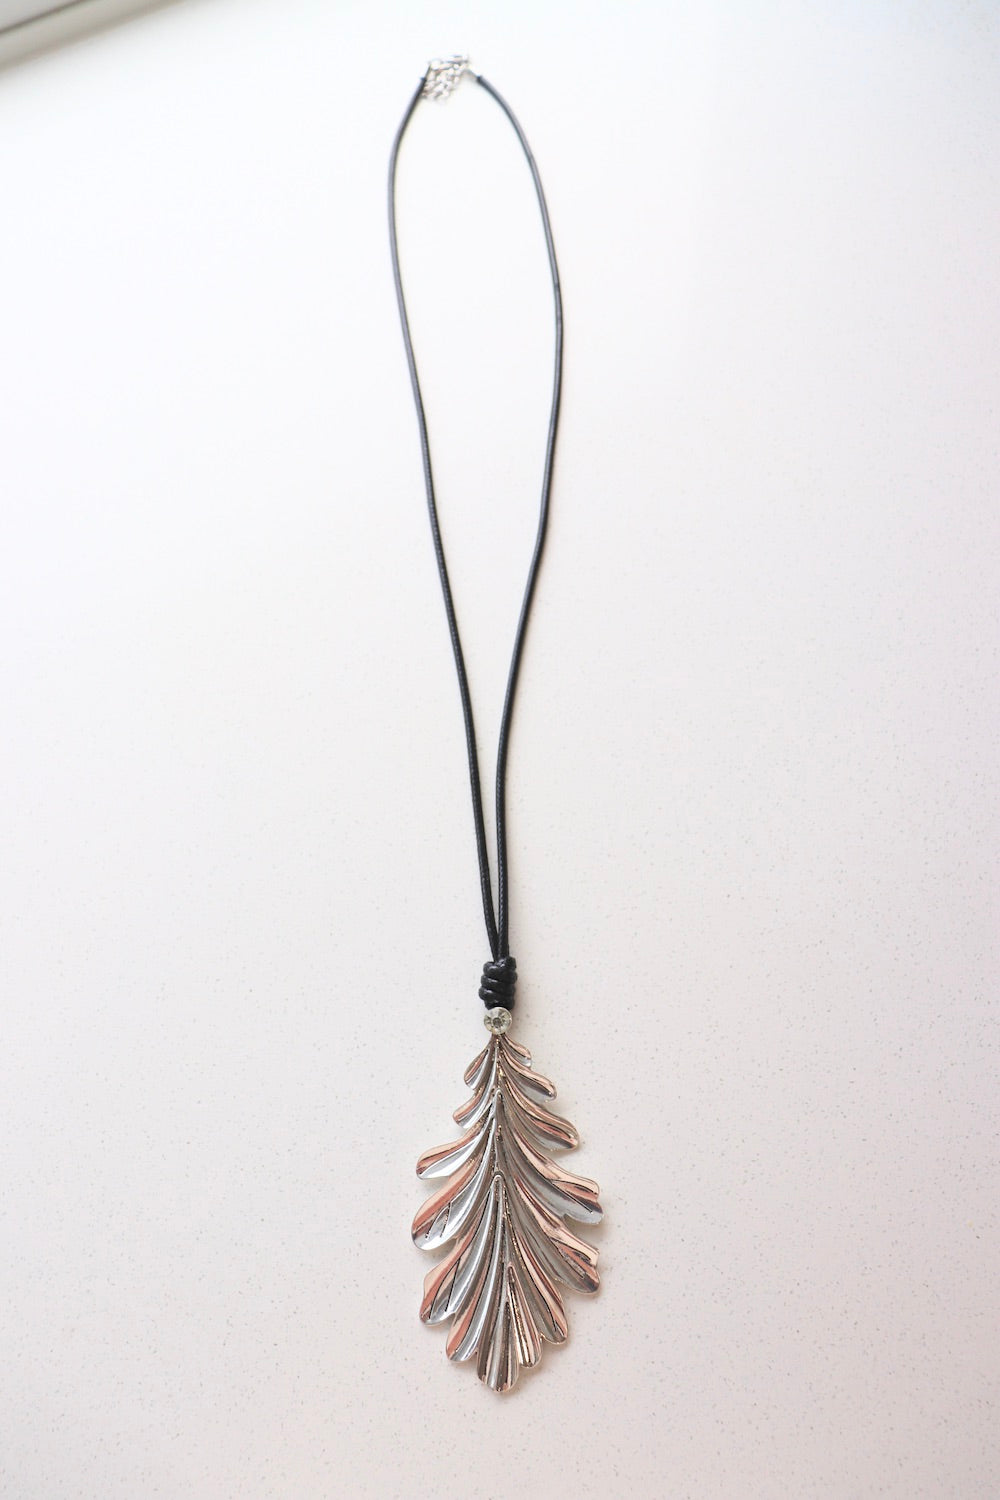 Long Silver Leaf Pendant Necklace